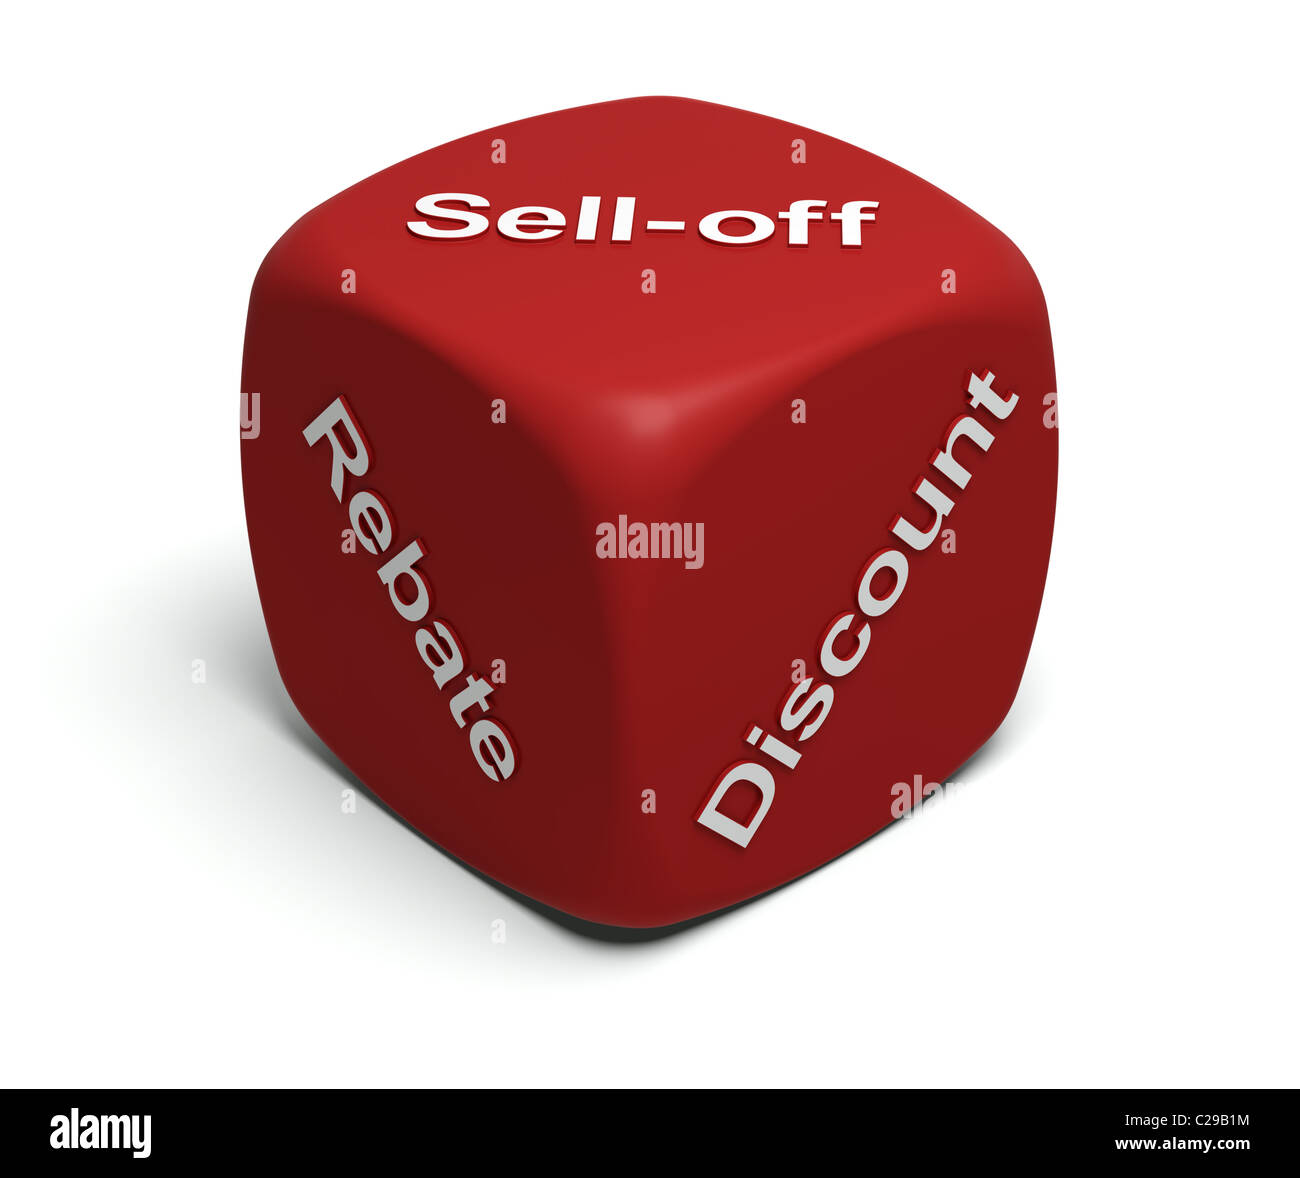 Red Dice with words Rebate, Discount, Sell-off on faces - Stock Image